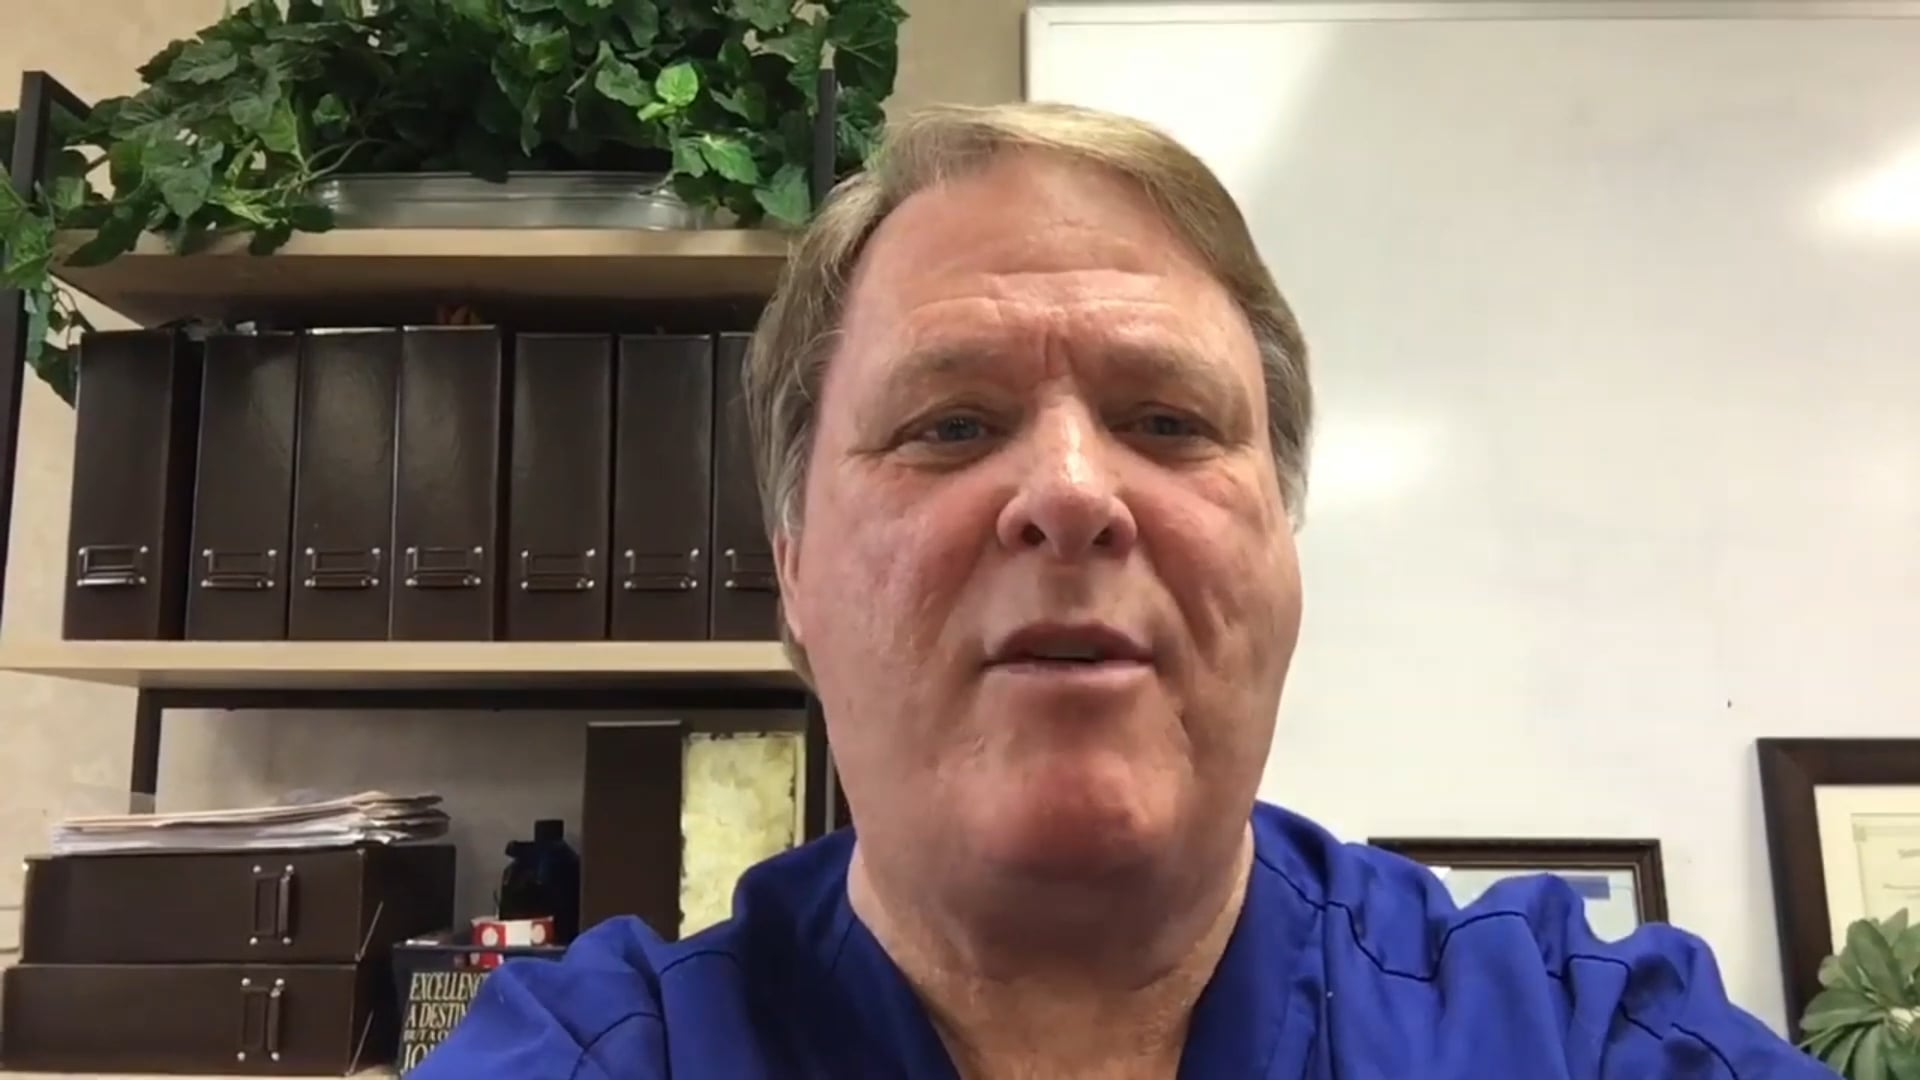 Dr. Mark video